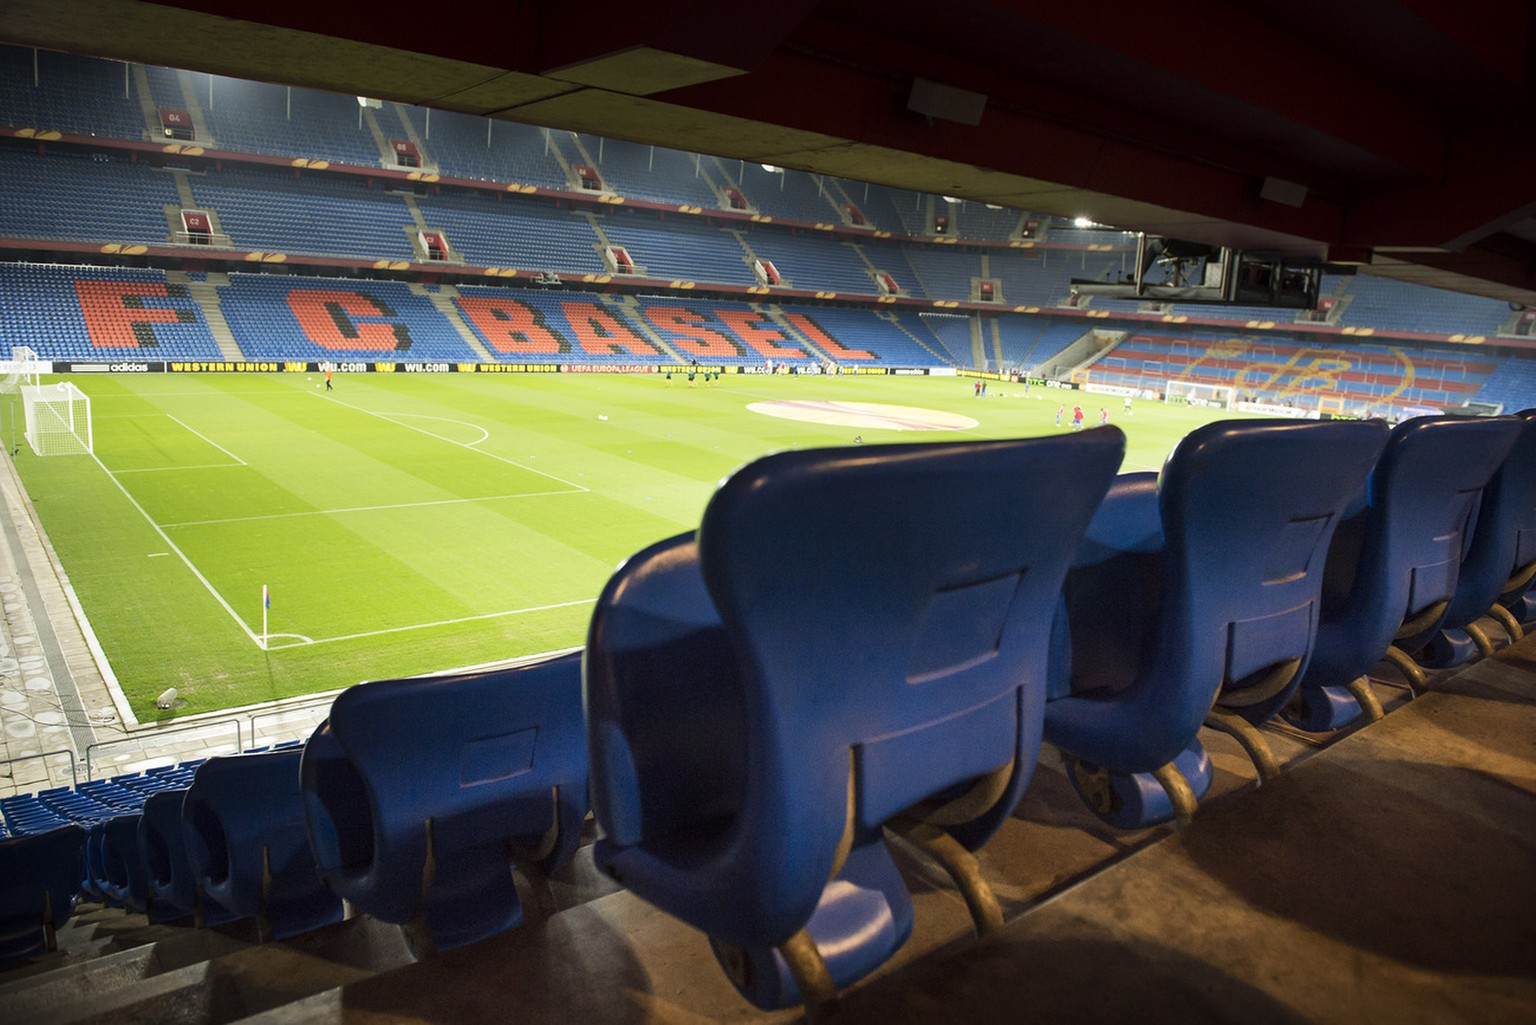 A general view of the stadium with empty chairs are pictured before the UEFA Europa League quarter final first leg soccer match between Switzerland's FC Basel 1893 and Spain's Valencia CF behind closed doors at the St. Jakob-Park stadium in Basel, Switzerland, on Thursday, April 3, 2014. (KEYSTONE/Jean-Christophe Bott)